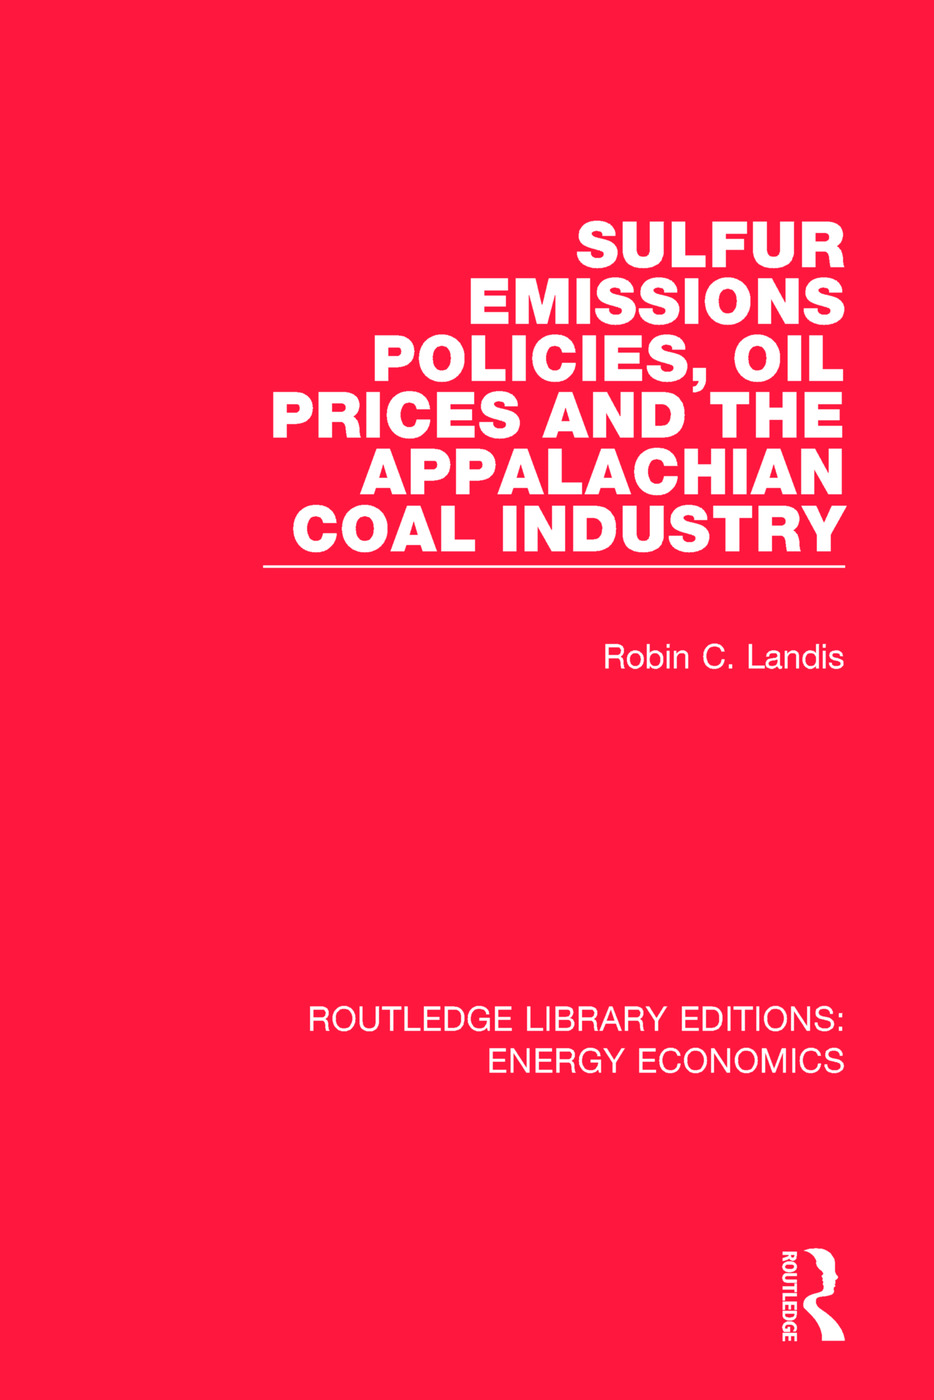 Sulfur Emissions Policies, Oil Prices and the Appalachian Coal Industry